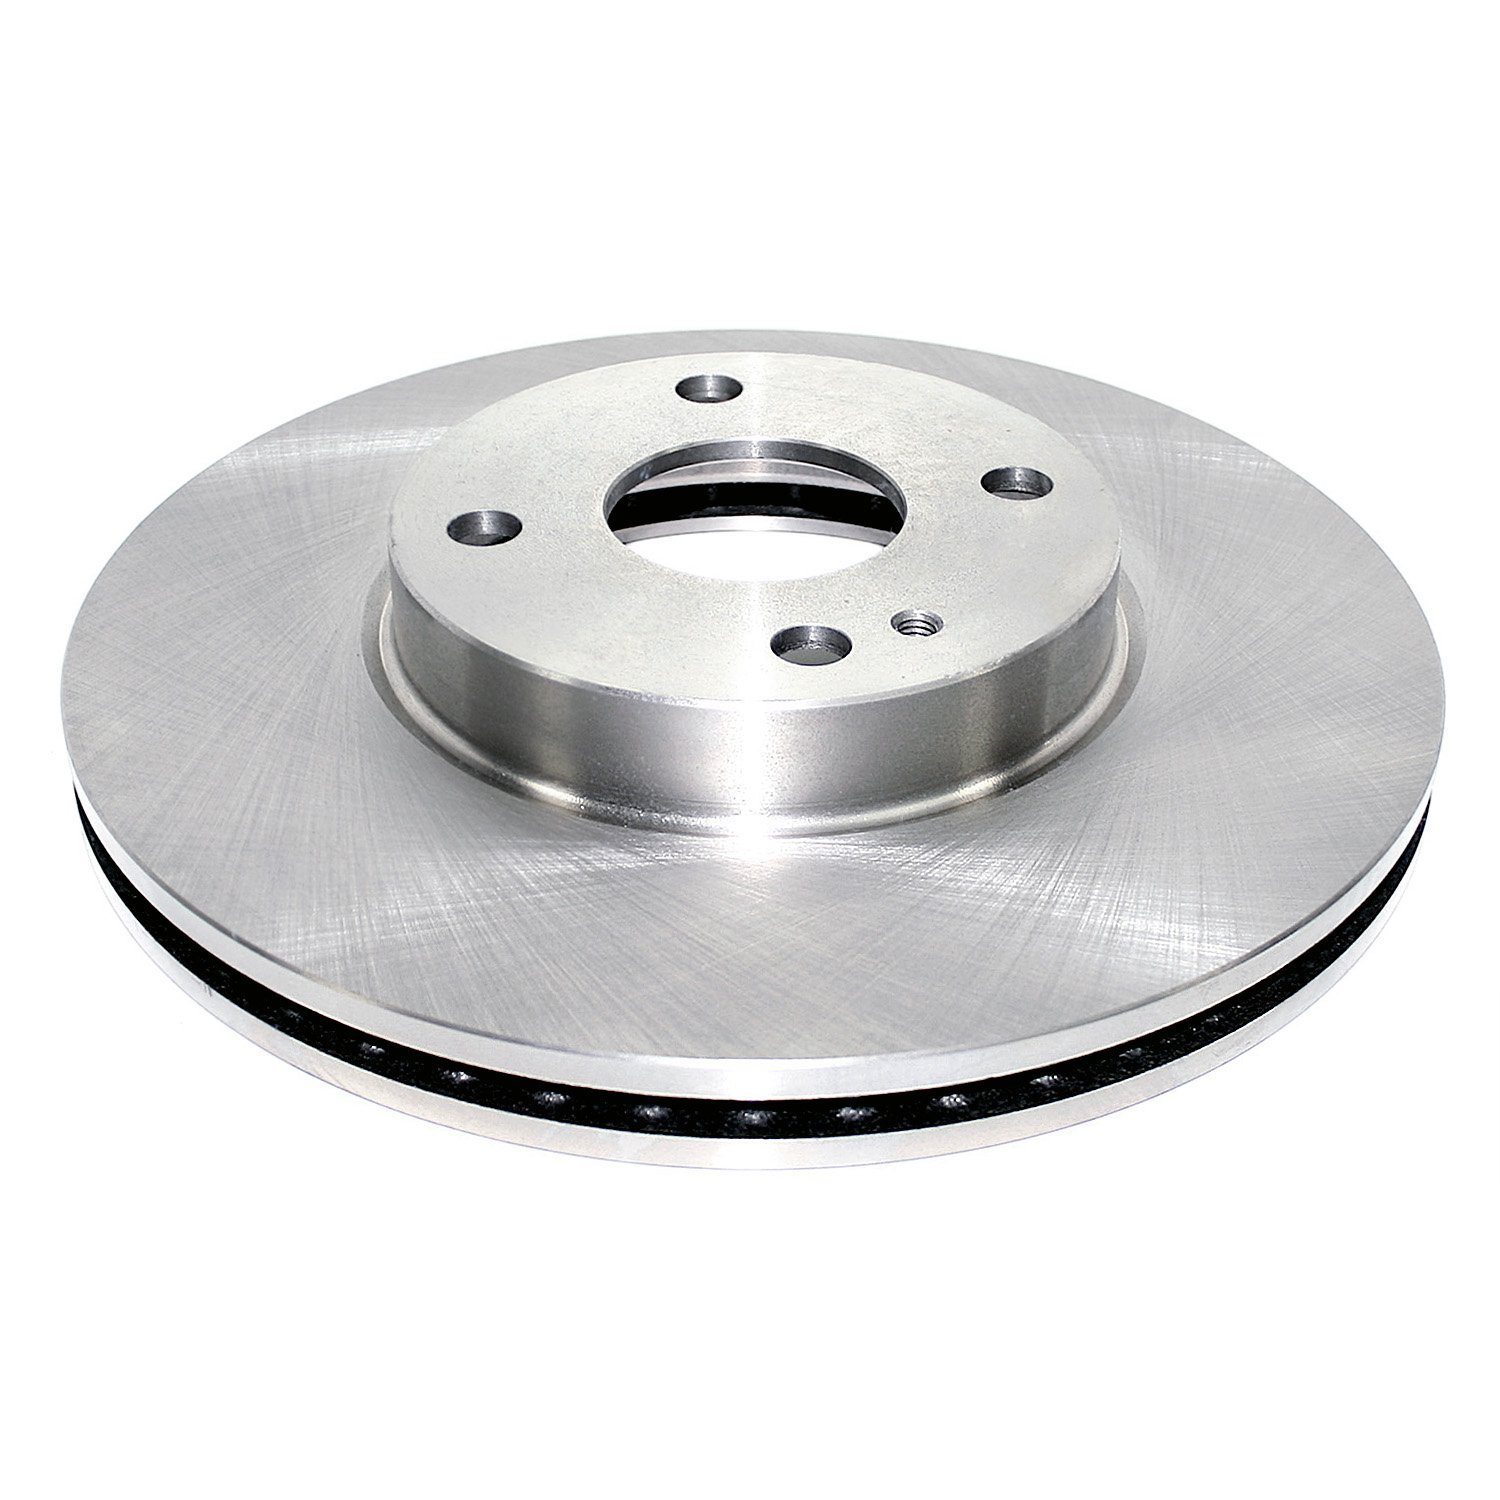 DuraGo BR901650 Front Brake Rotor-Vented for Select Toyota Yaris iA 2017-2018 Models